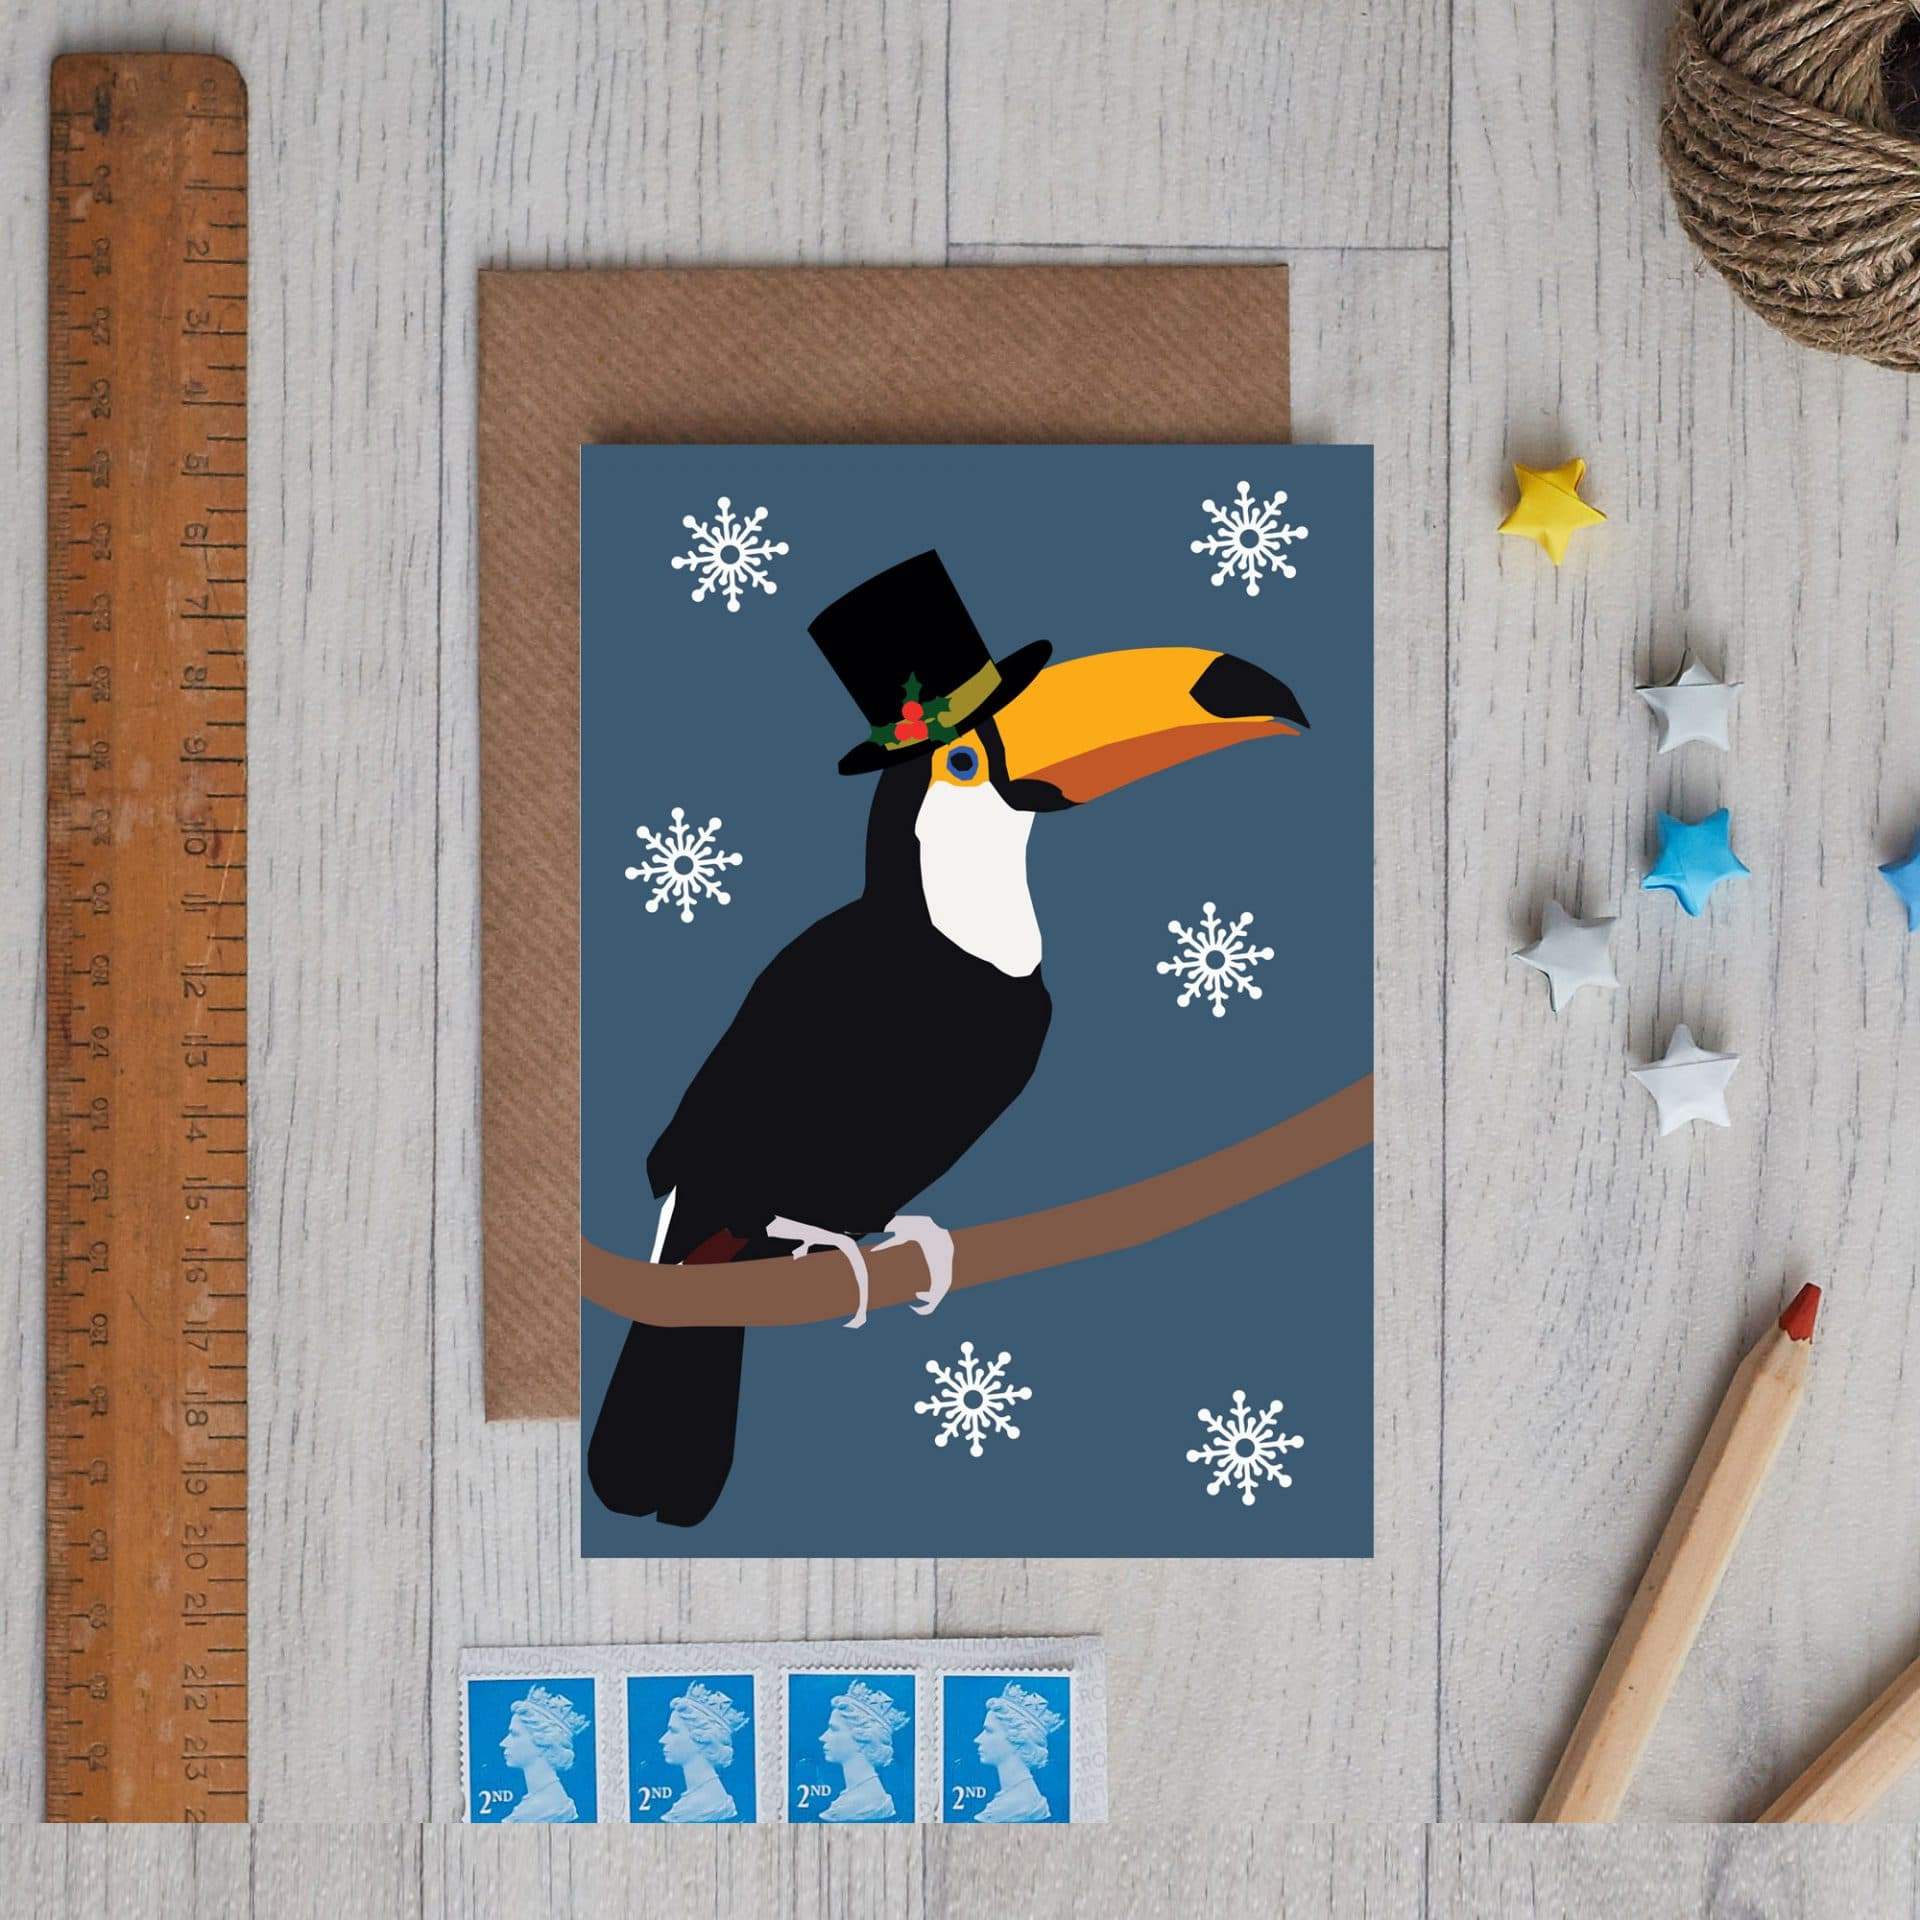 Christmas Card Luxury Designer Personalised Message Sustainable Environmentally Friendly FSC Paper Plastic Free - Christmas toucan card designed by lorna syson